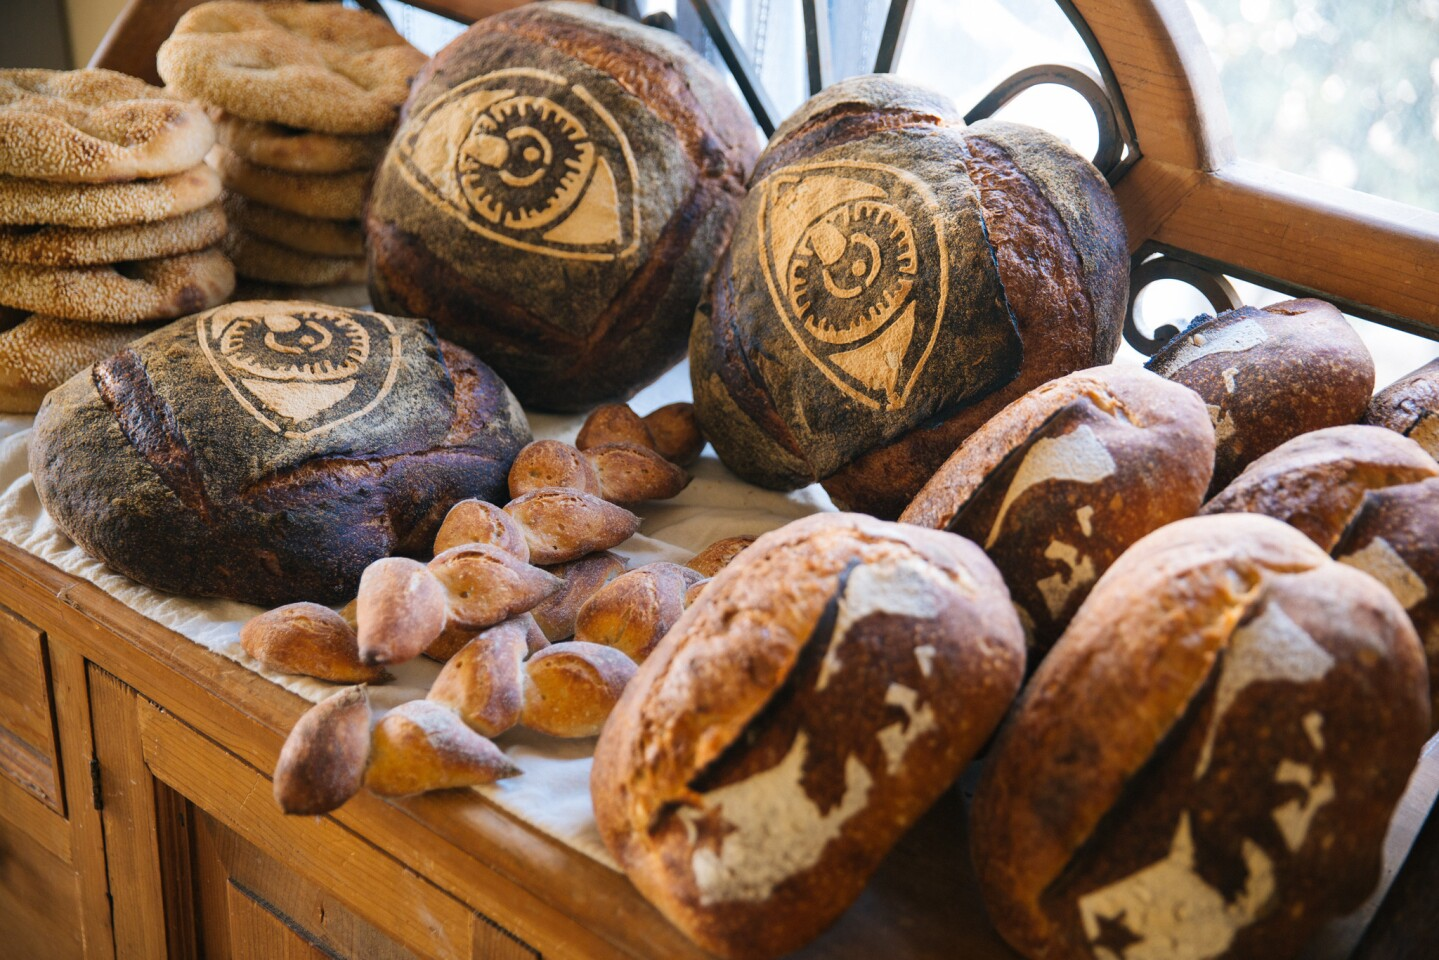 California loaves, epis, miches and seeded sand dollar breads at Gusto.